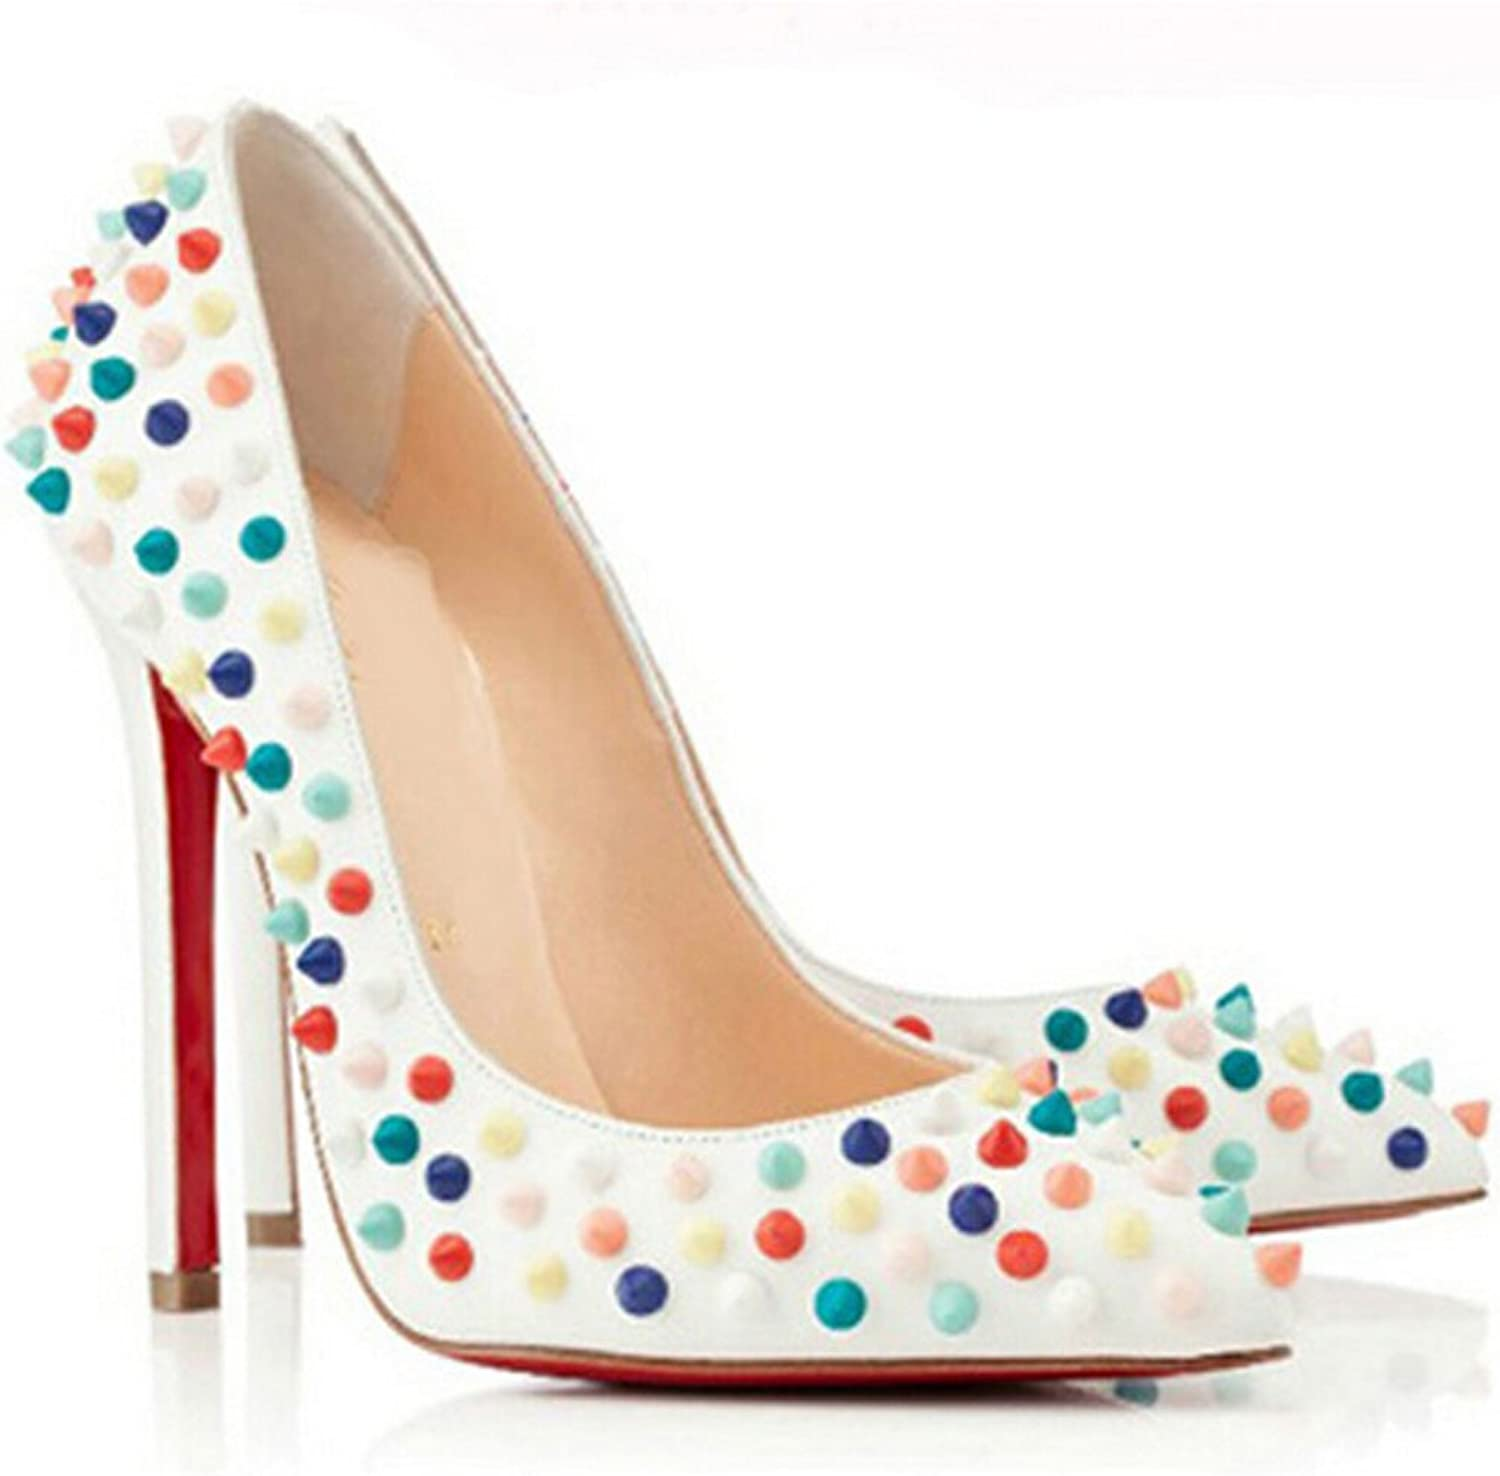 San hojas Patent Leather Pumps with Rivet High Heels Red